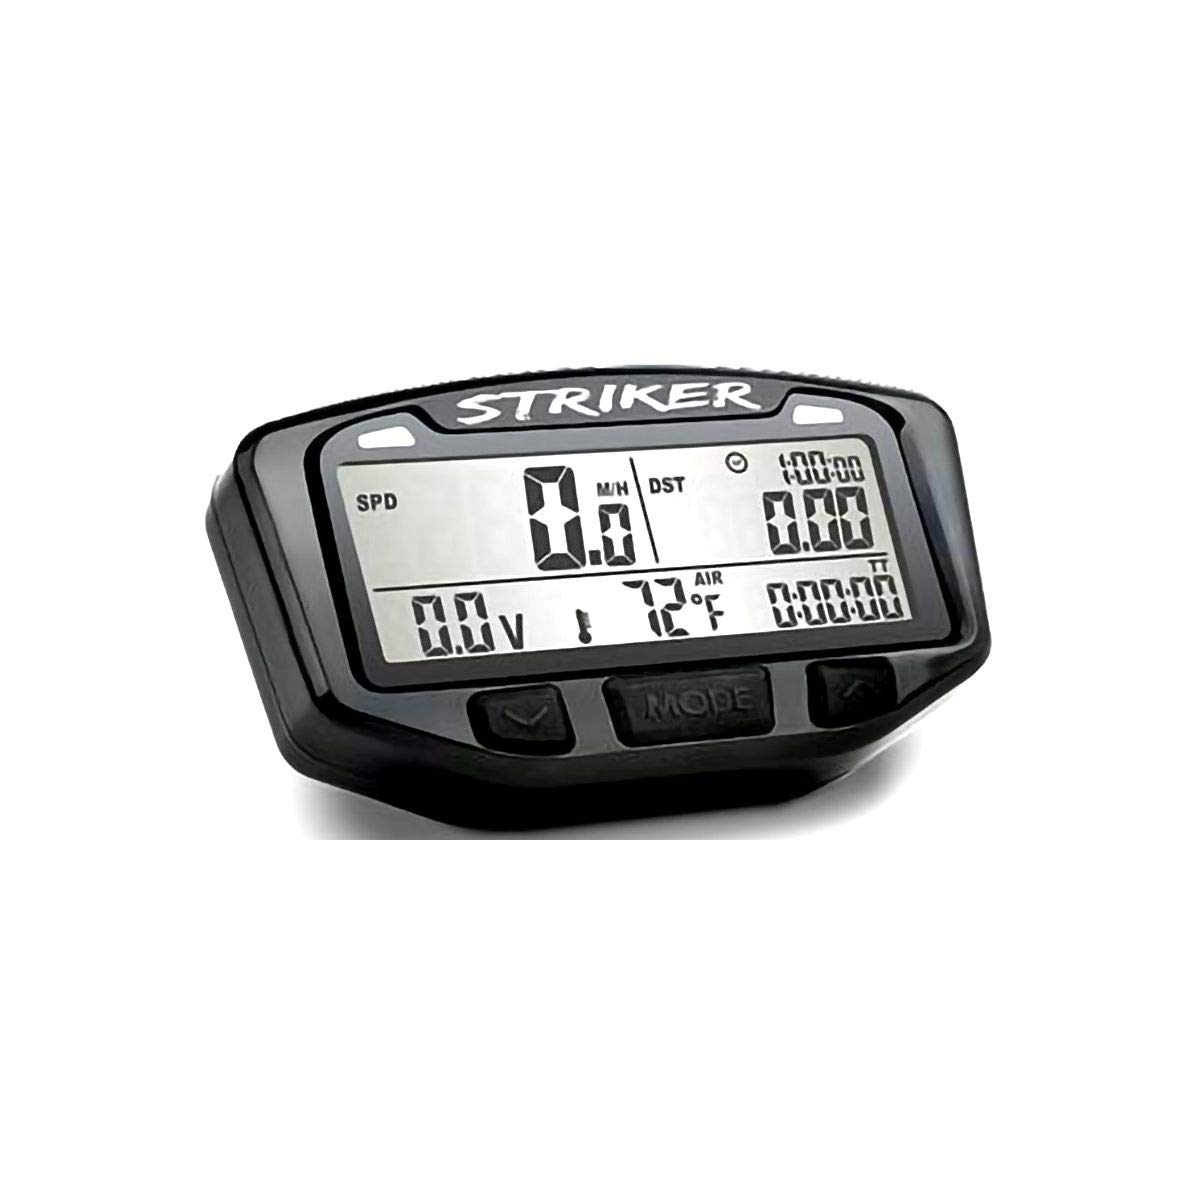 Trail Tech 712-120 Black Striker Speedometer Digital Gauge Kit with Volt Meter by Trail Tech